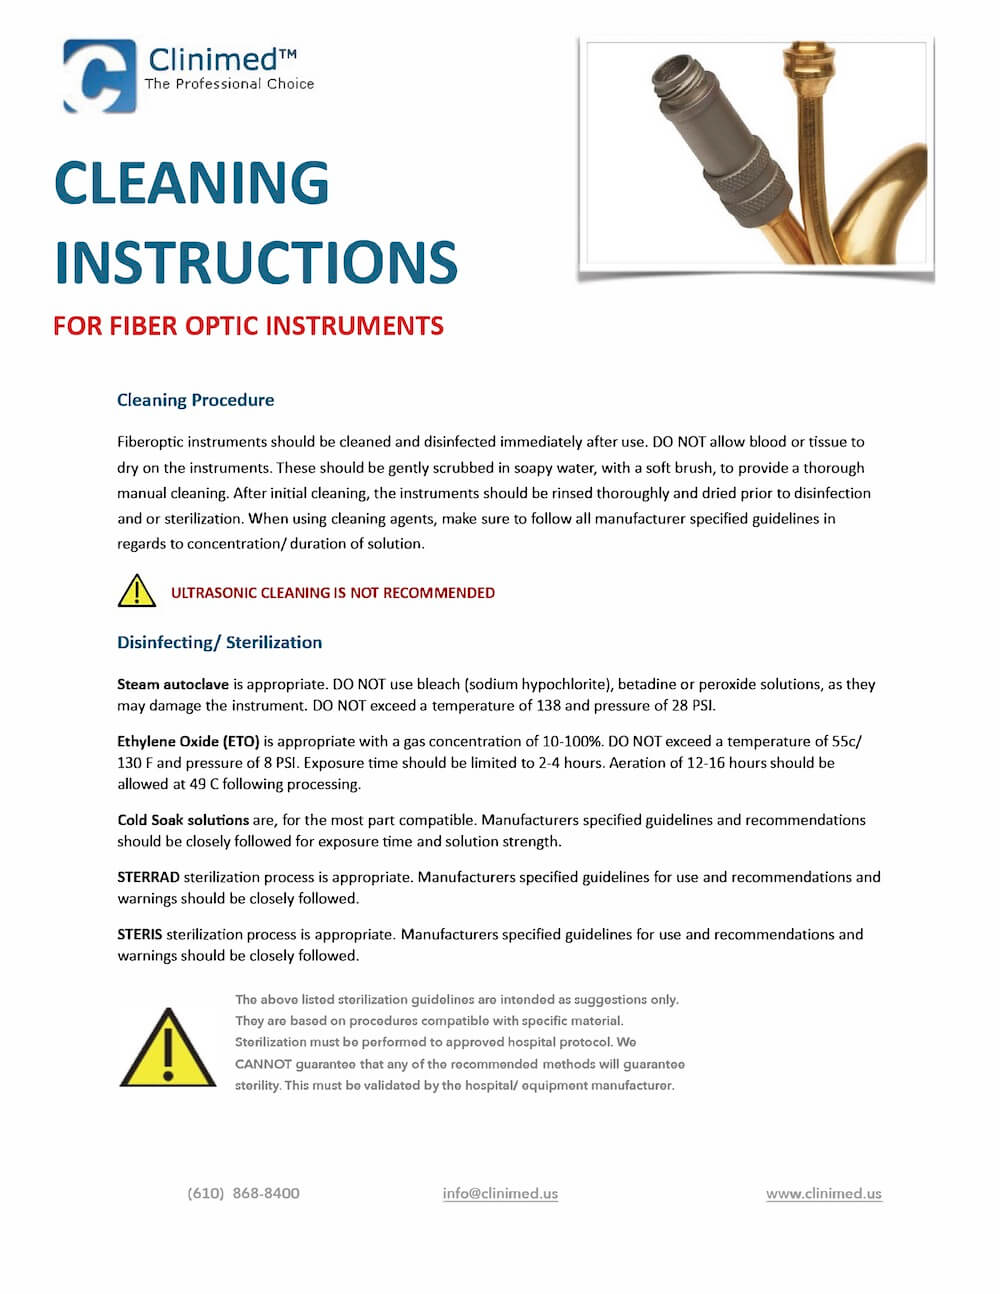 CLINIMED-Cleaning-Instructions-for-Fiber-Optic-Instrumentation